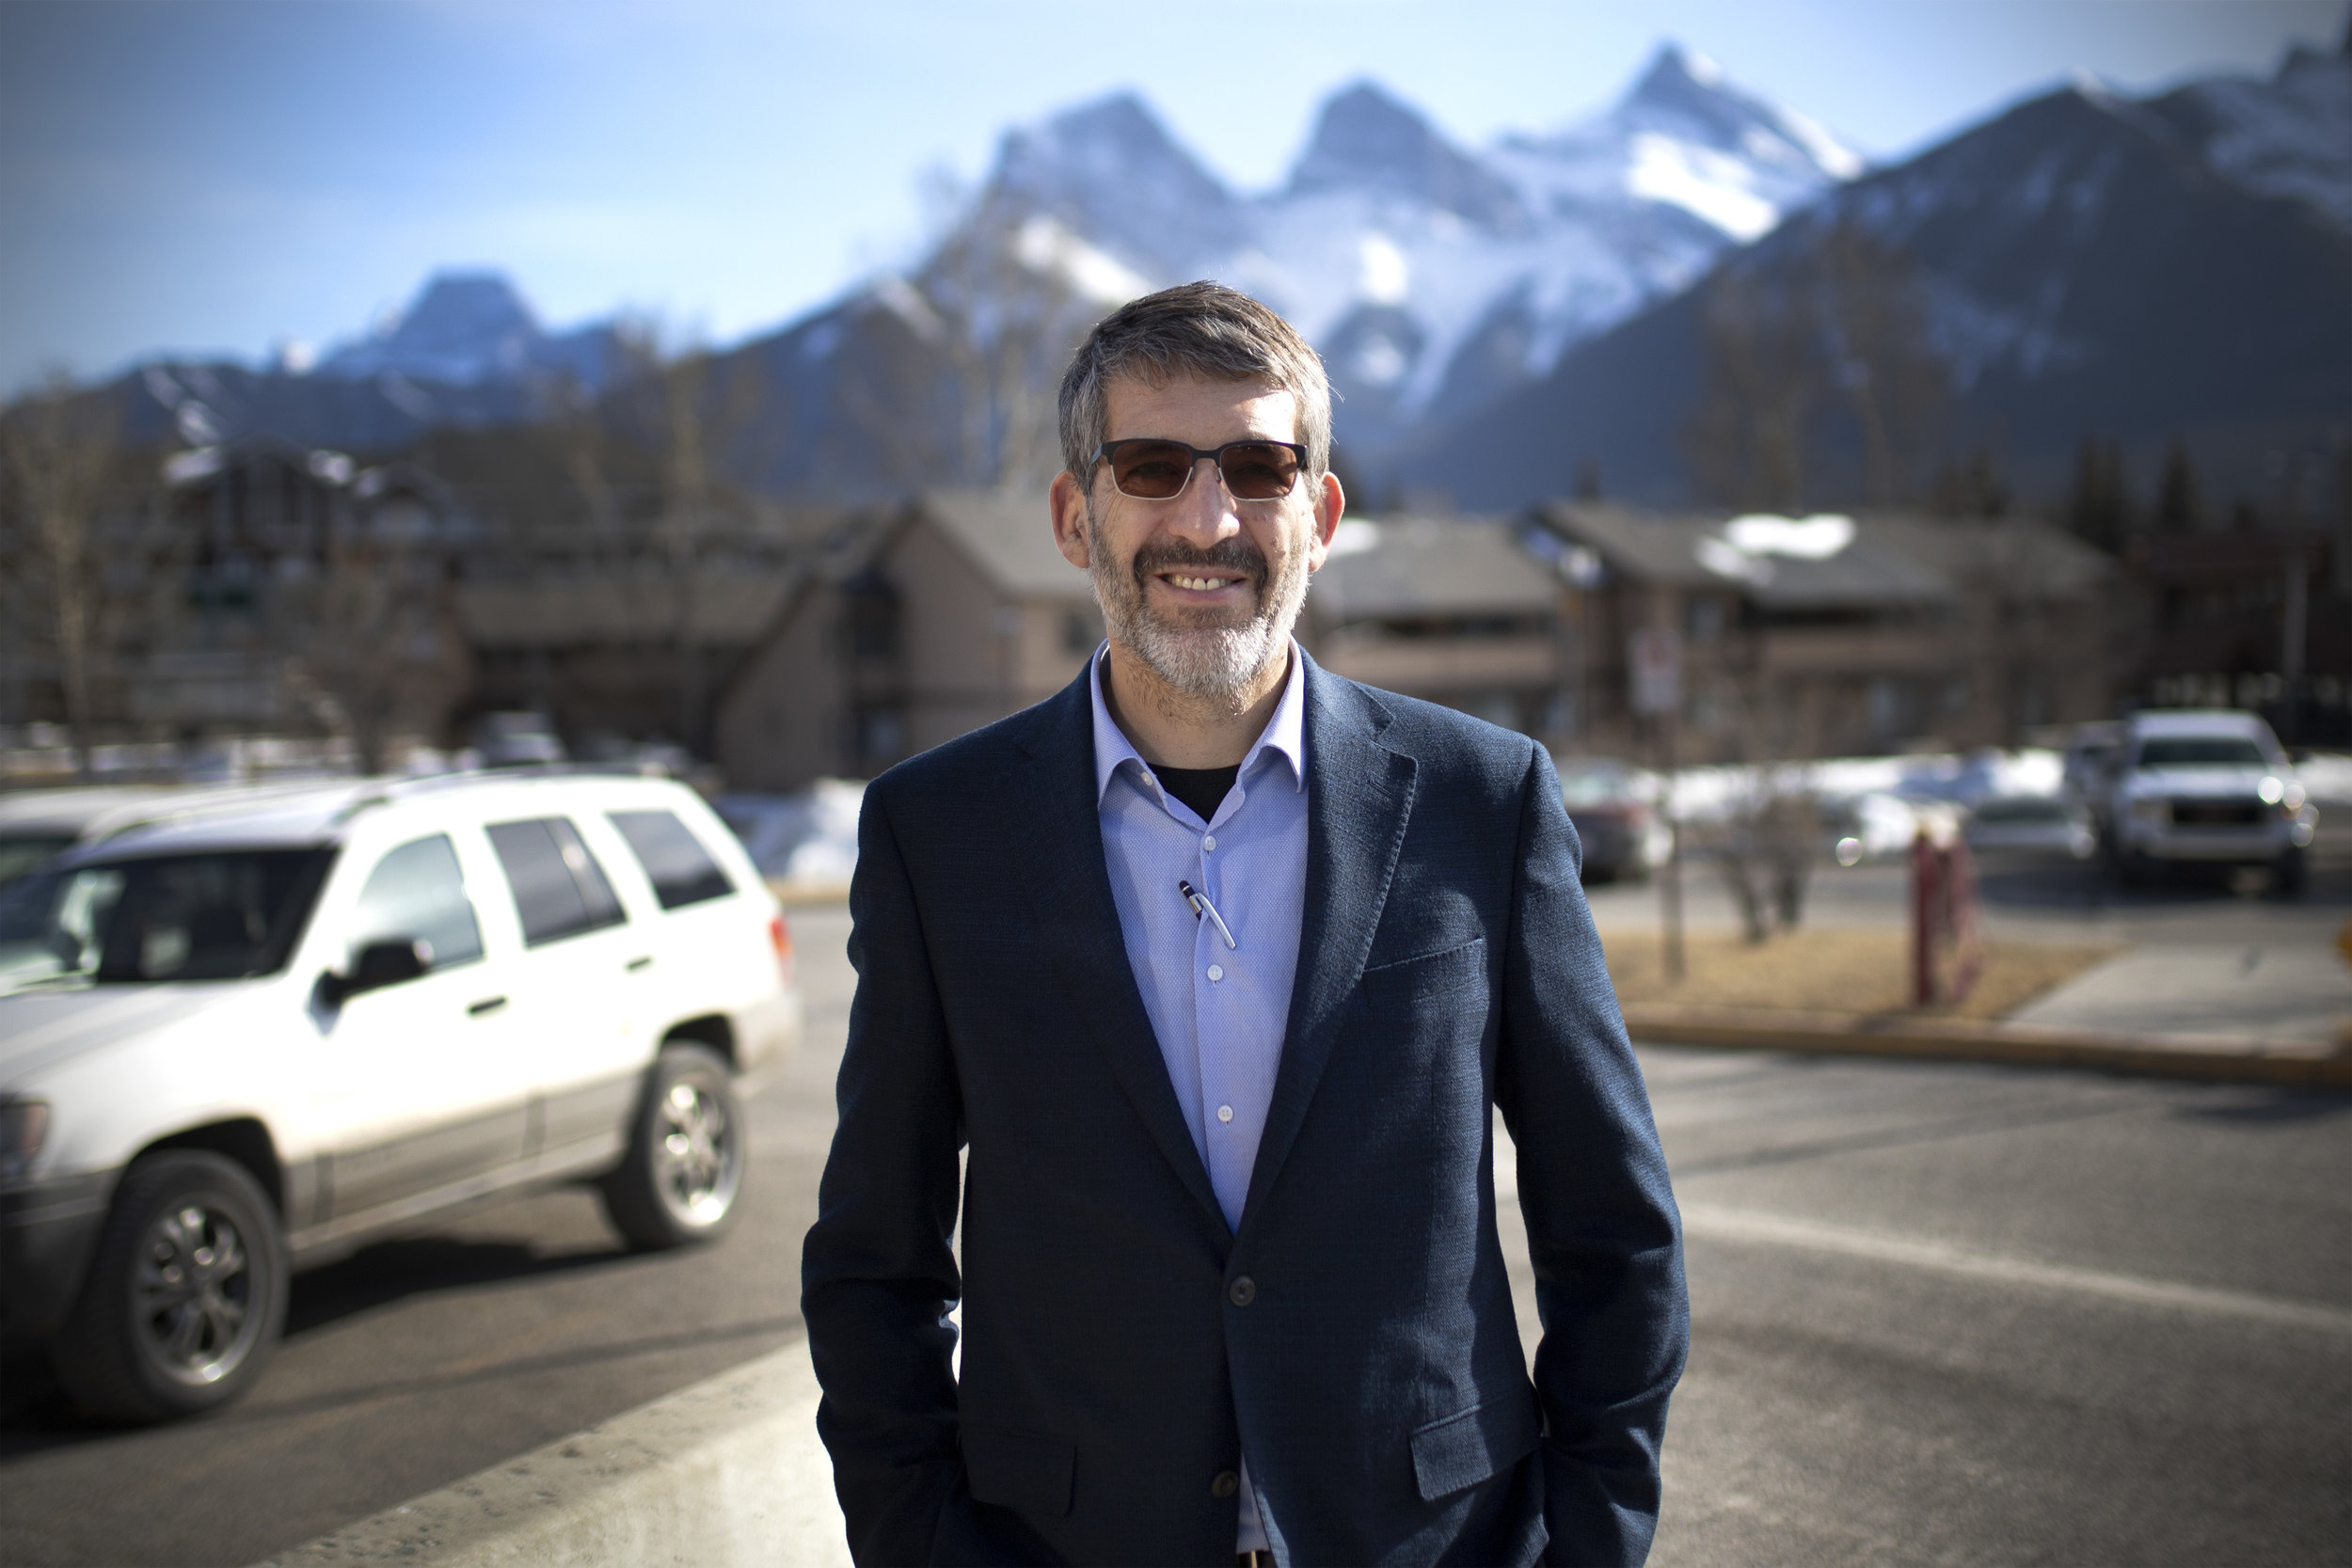 Canmore General Hospital's new Chief of Staff, Dr. Gert Du Plessis, brings decades of experience, compassion and a patient-centered approach to the role.